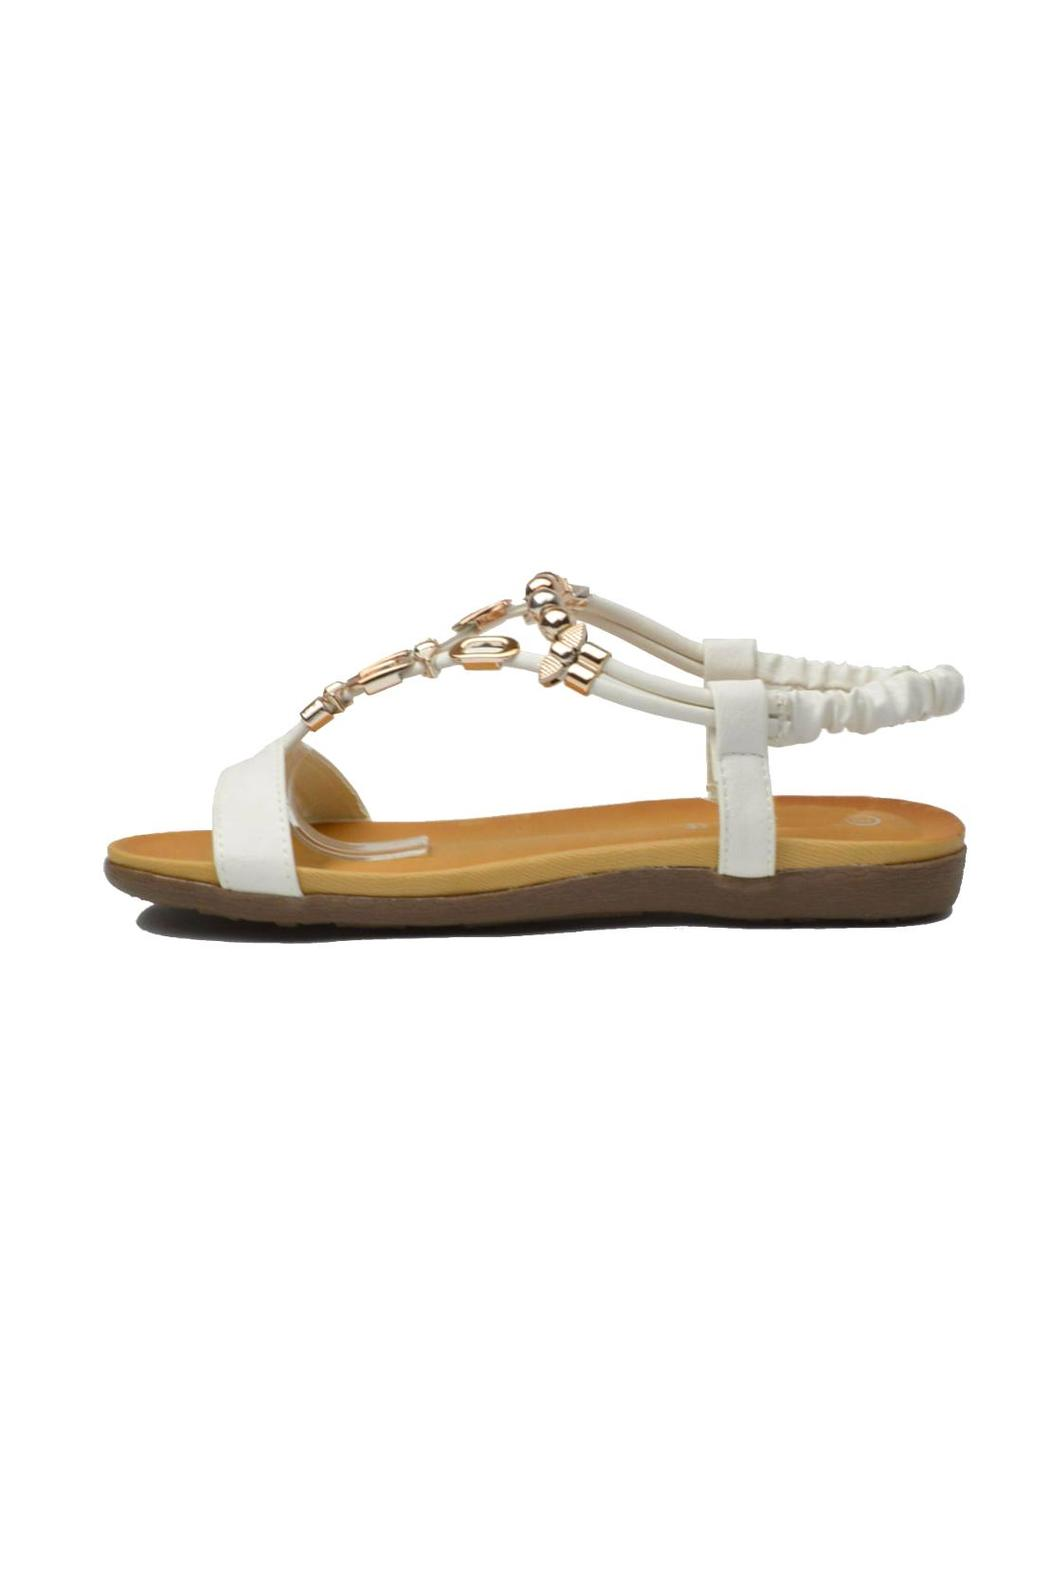 Sup Trading Gold Hardware Sandal - Front Cropped Image